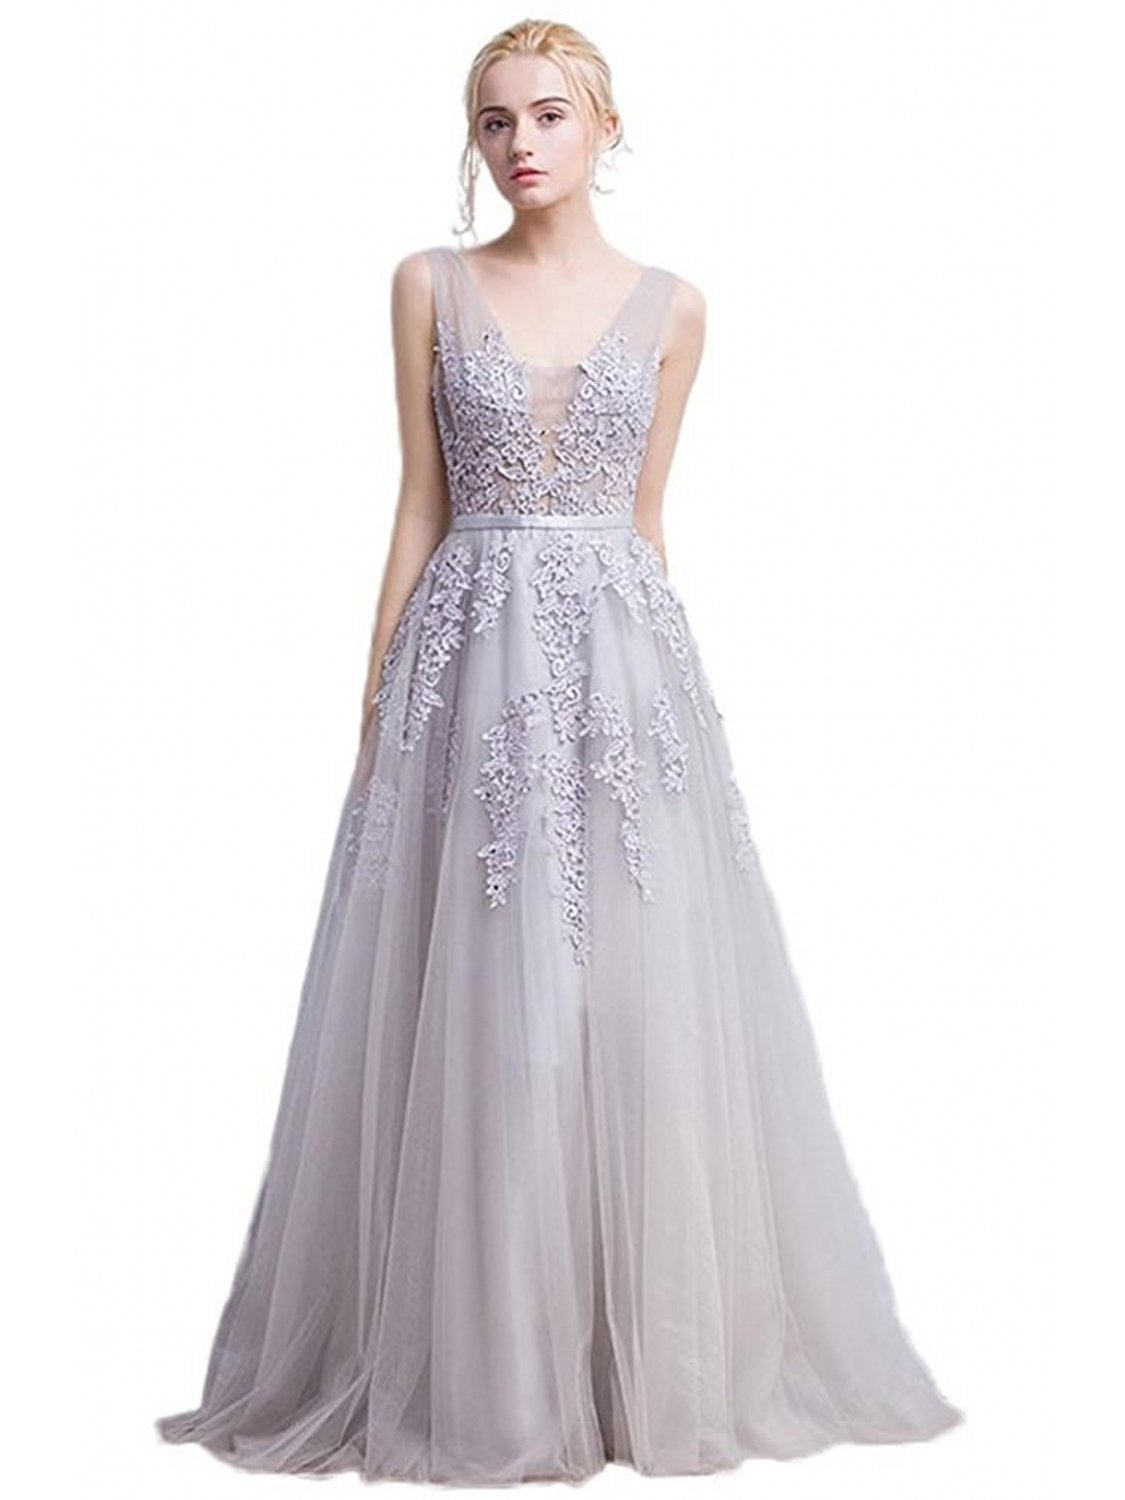 Women's Lace Midi Bridesmaid Prom Dresses (Silver,2) by Babyonlinedress